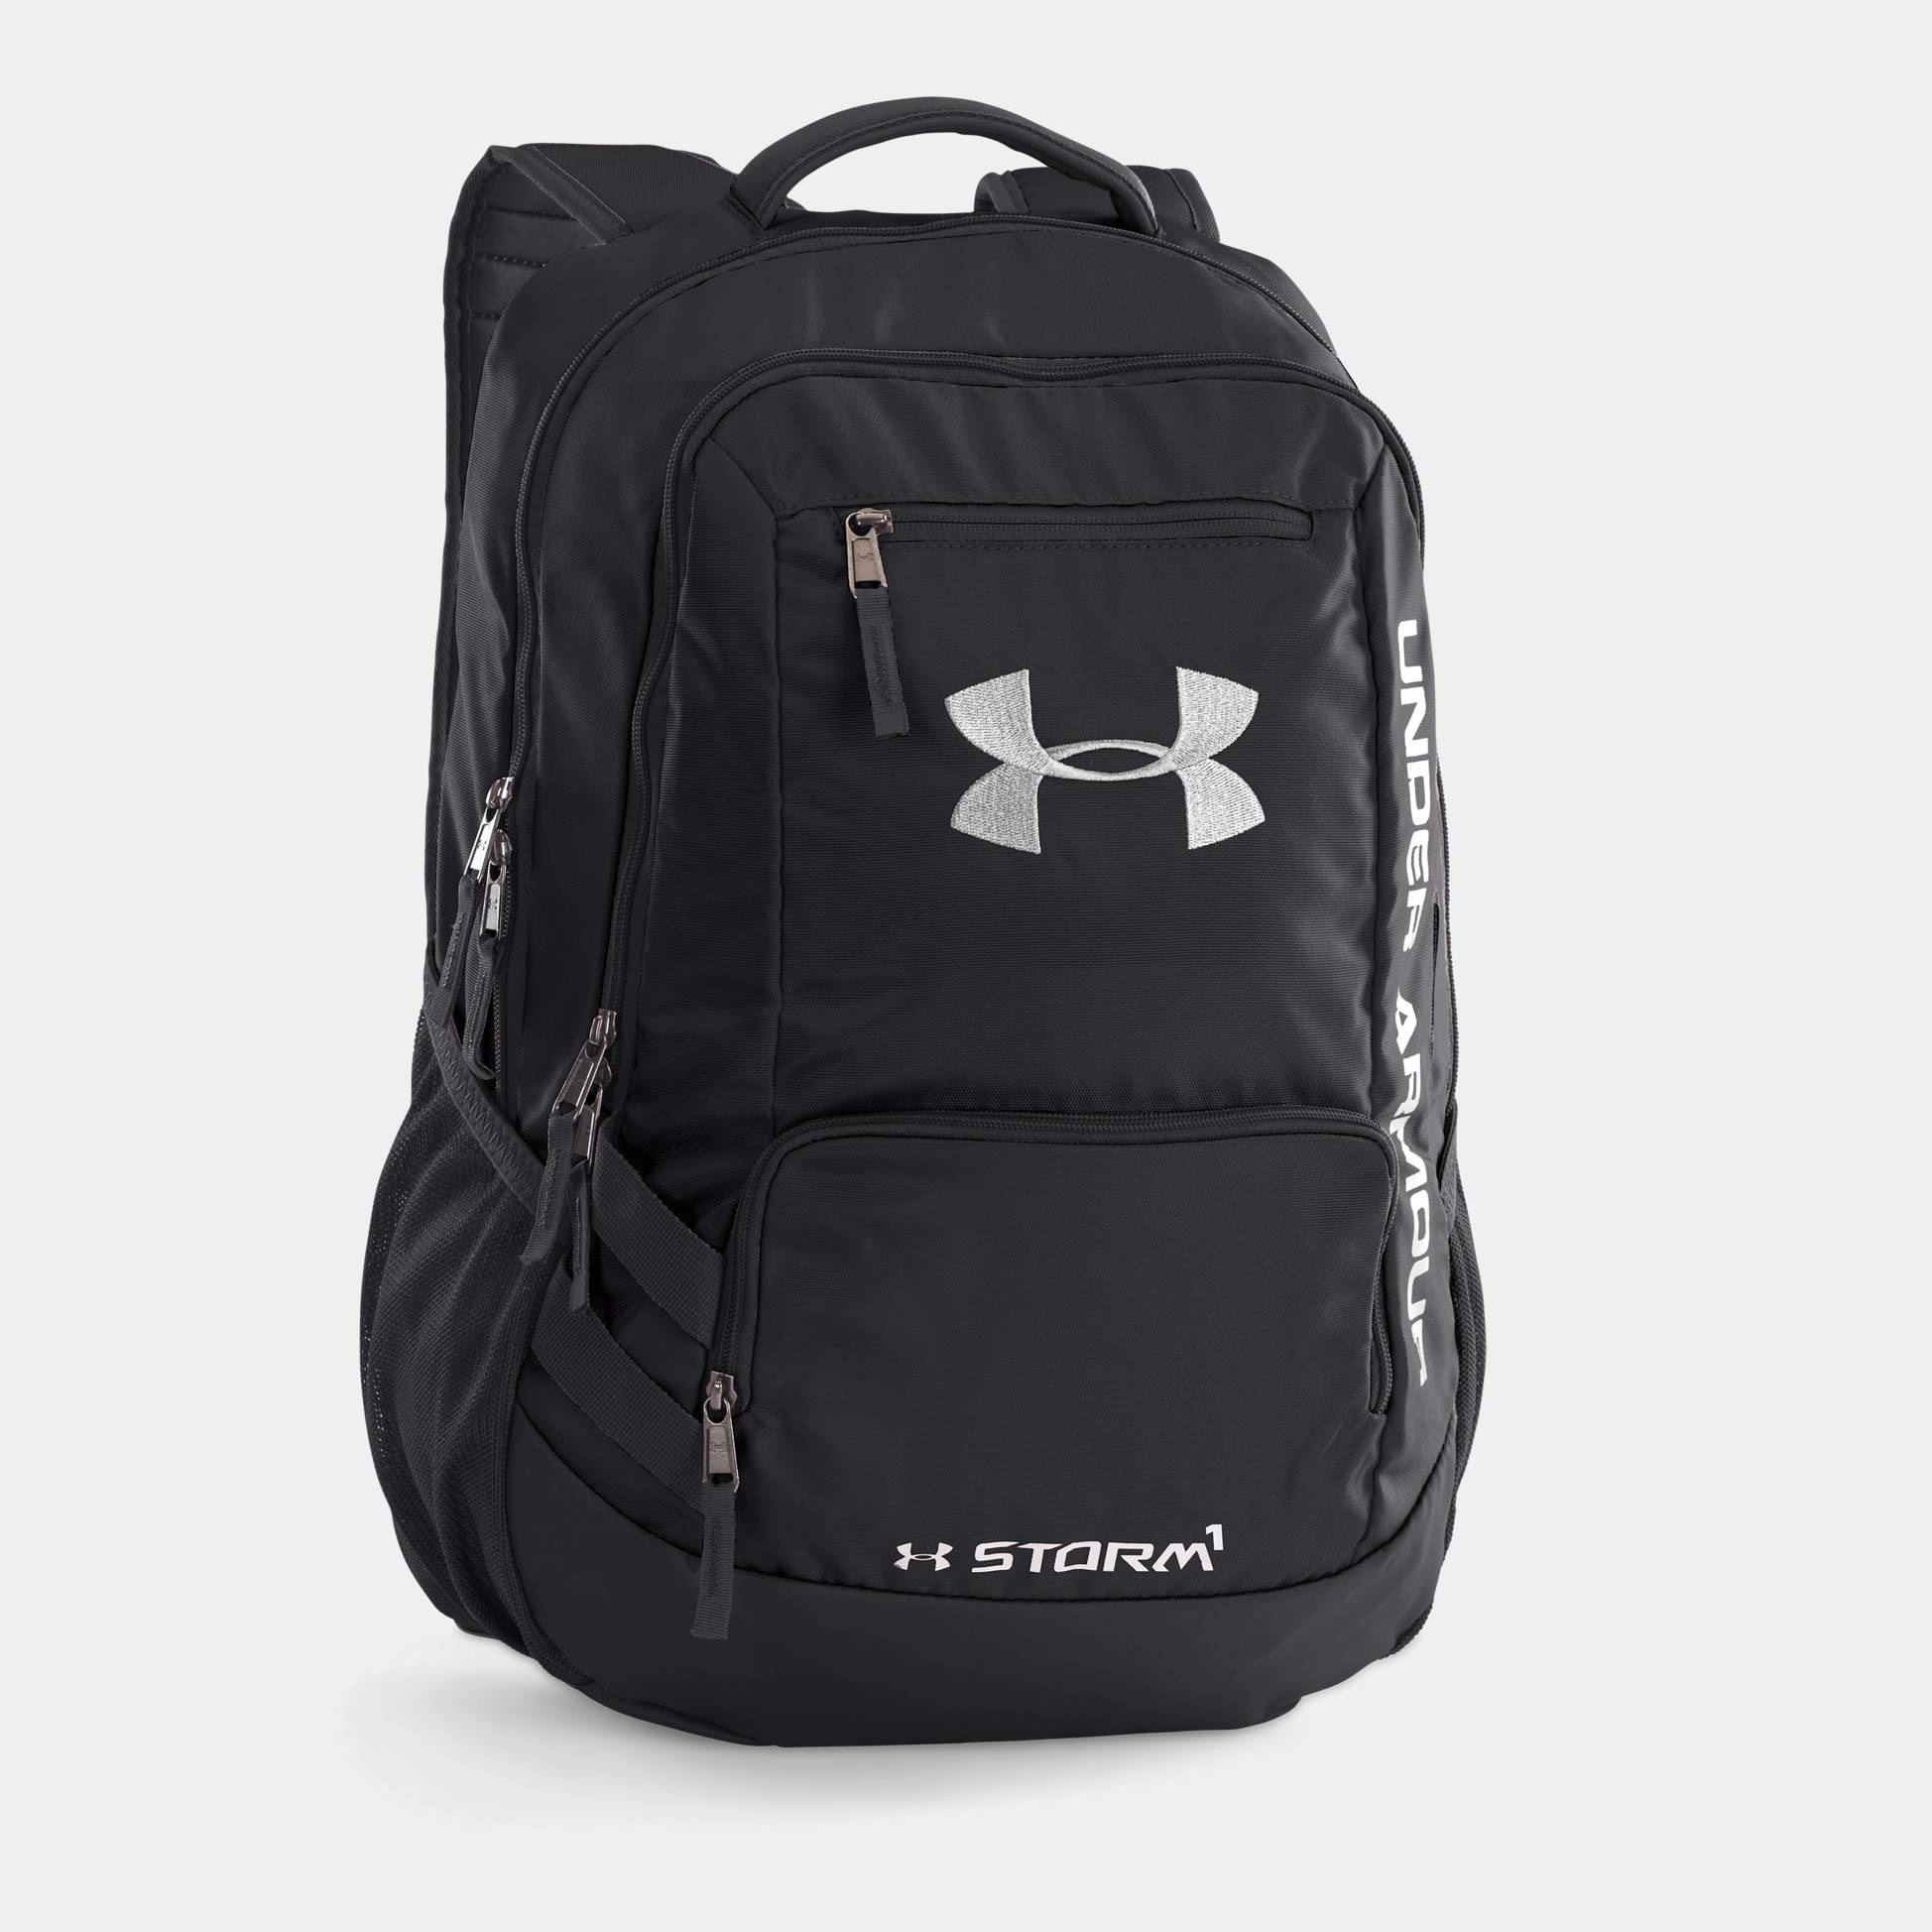 0cb8081340 under armour backpack storm